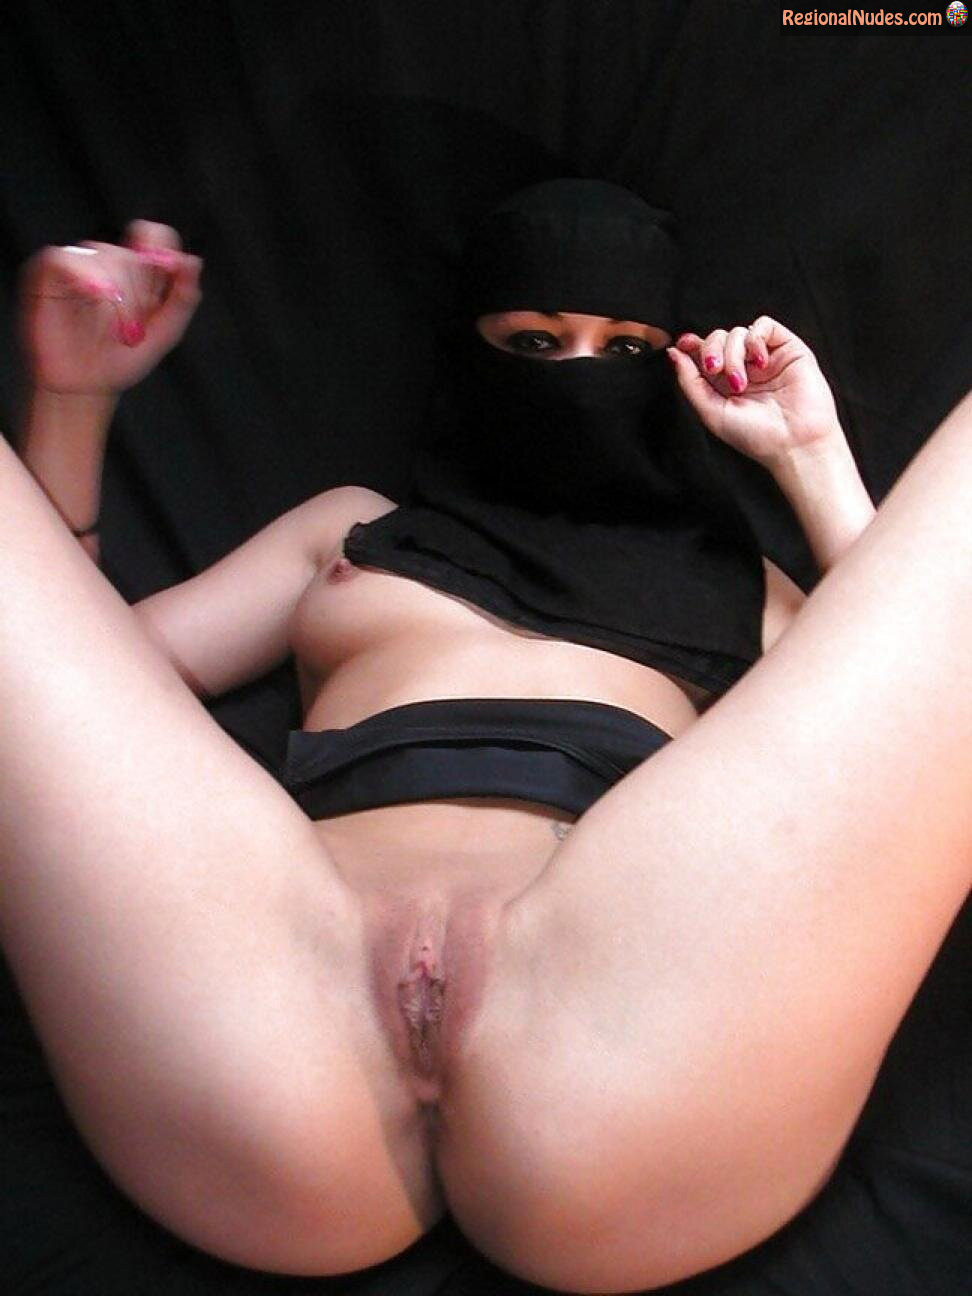 Saudi arabian xxx hot girls photos